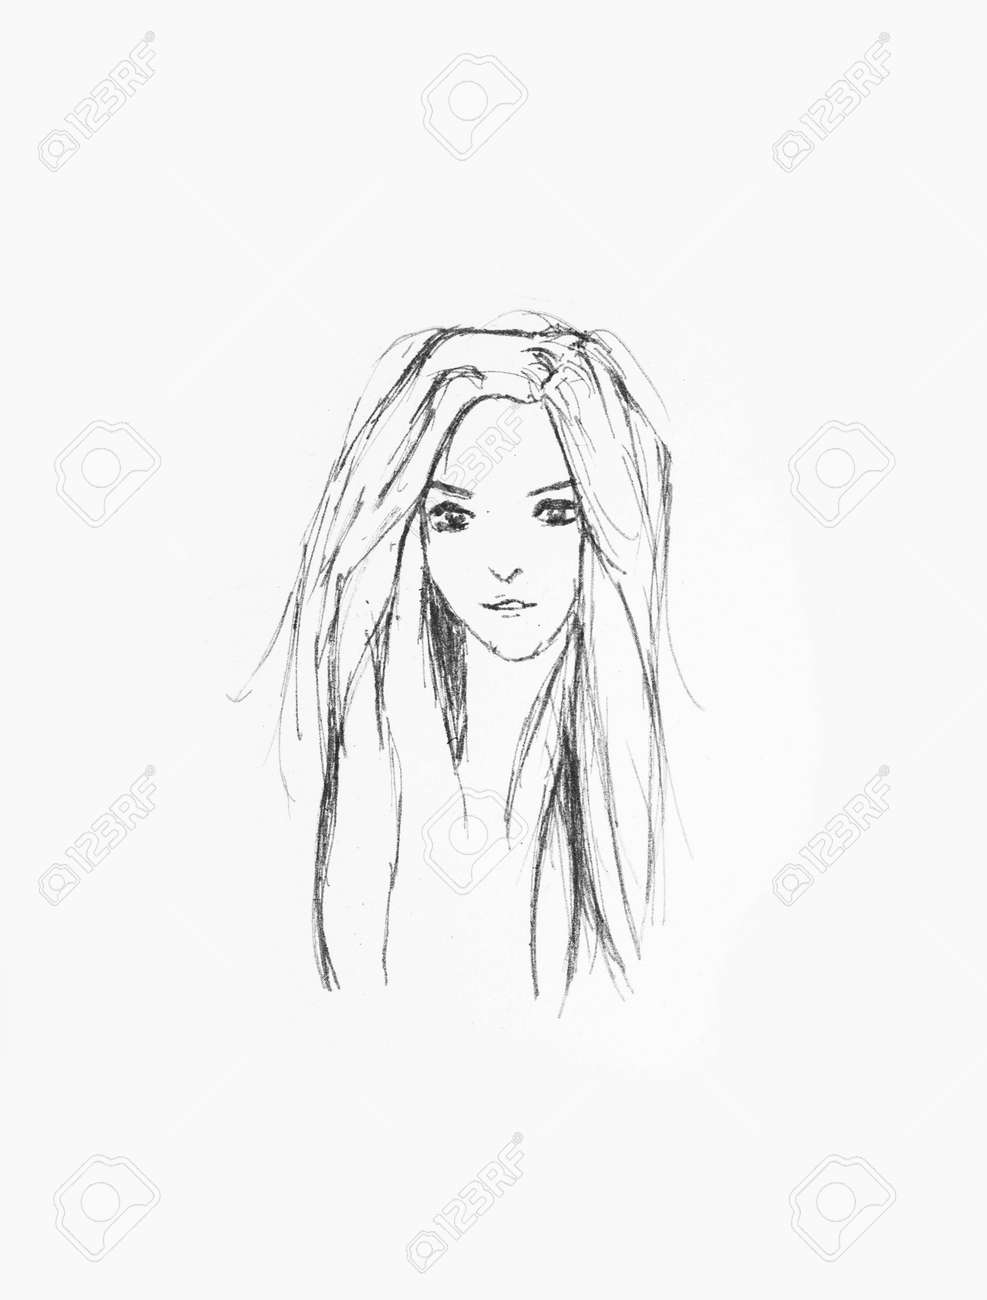 Hand drawn beautiful girl portrait pencil sketch of an anime girl on a white paper